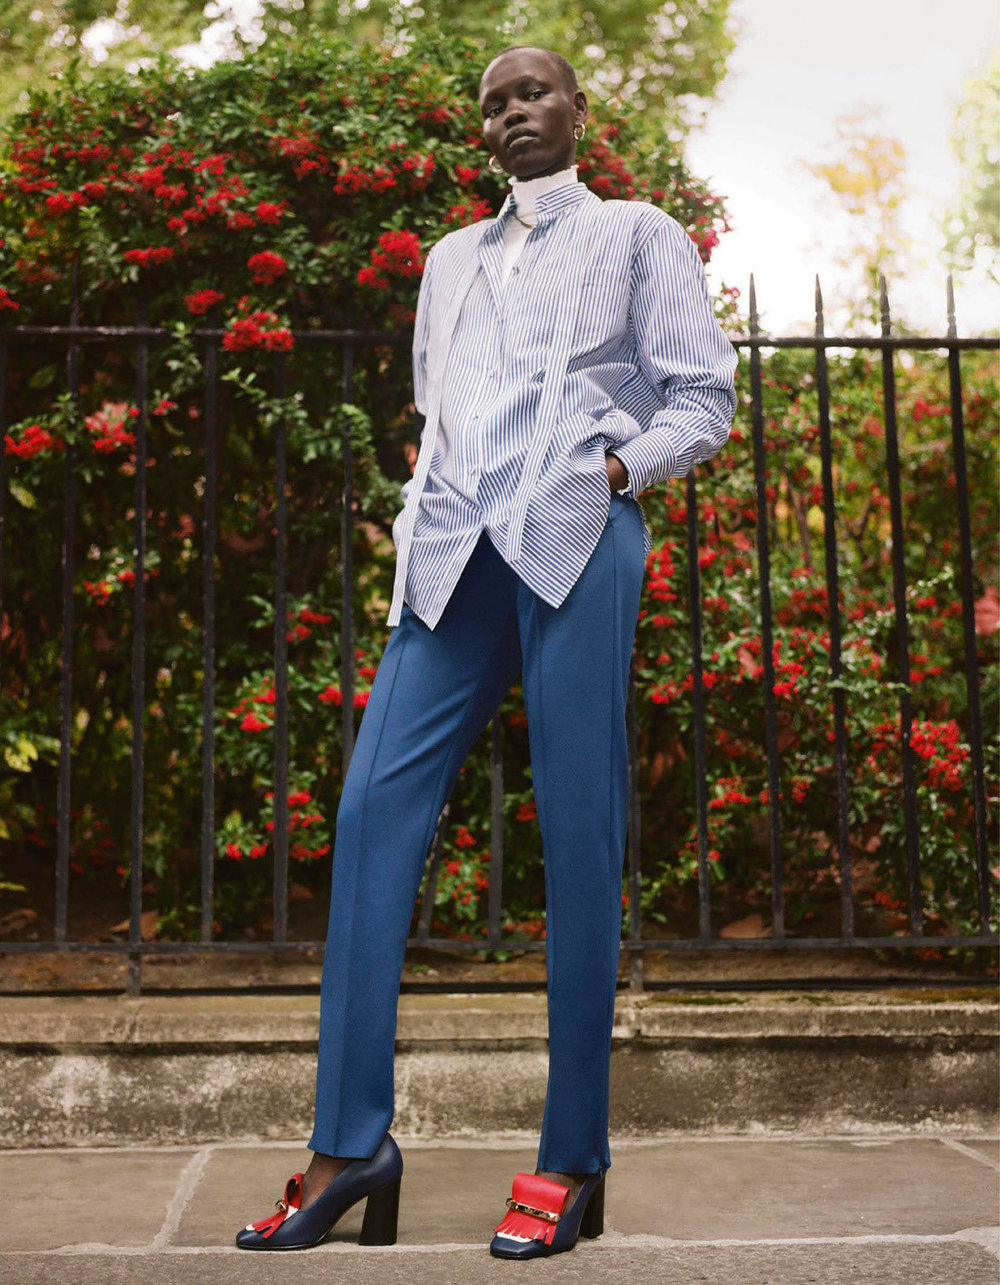 Grace Bol by Mehdi Lacoste for Porter Magazine 30 (5).jpg